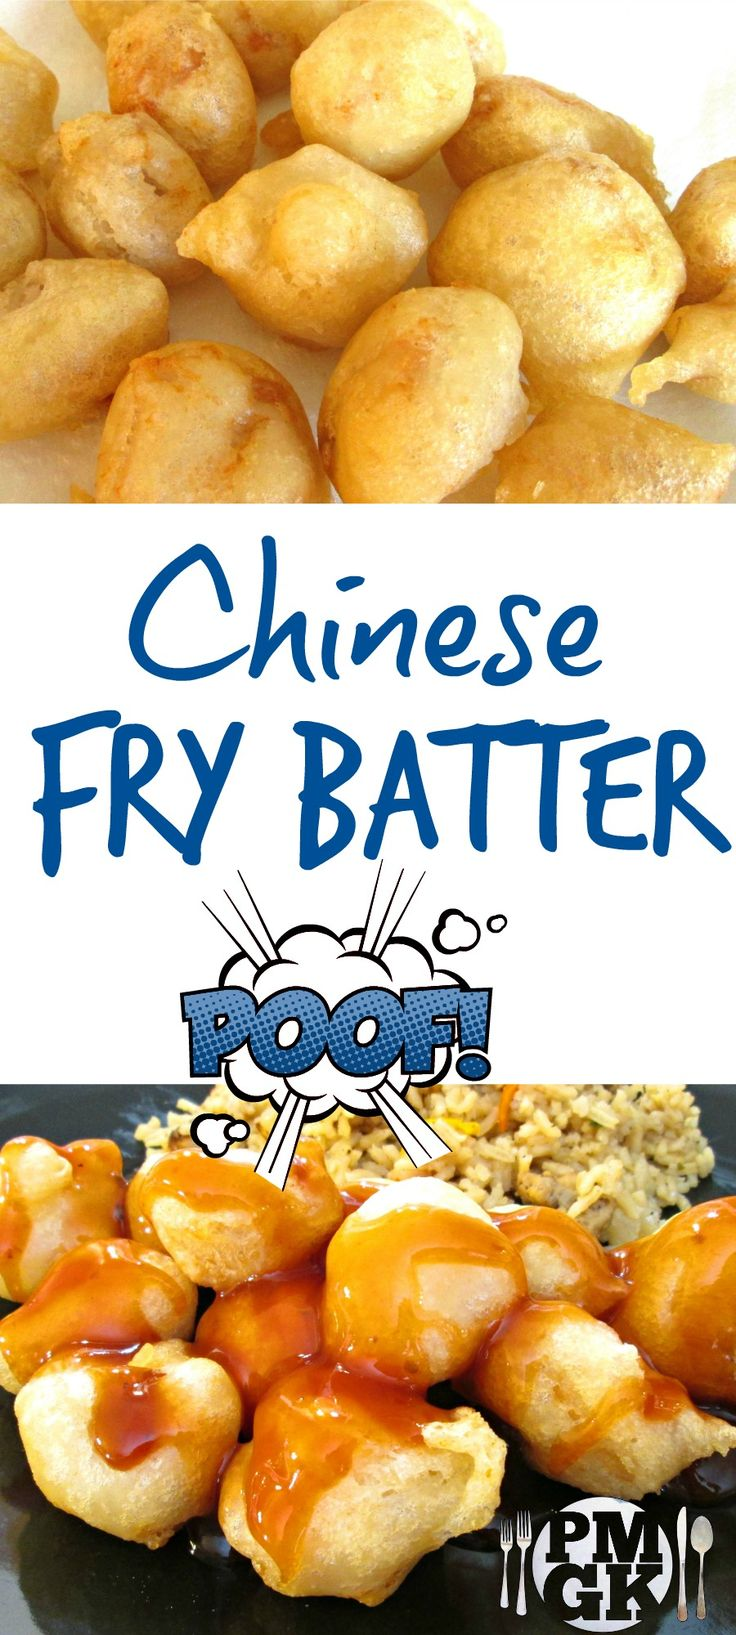 36 best pmgk asian food recipes images on pinterest asian food chinese fry batter chicken pork shrimp oreos and cheesecake asian food recipesdishes forumfinder Image collections